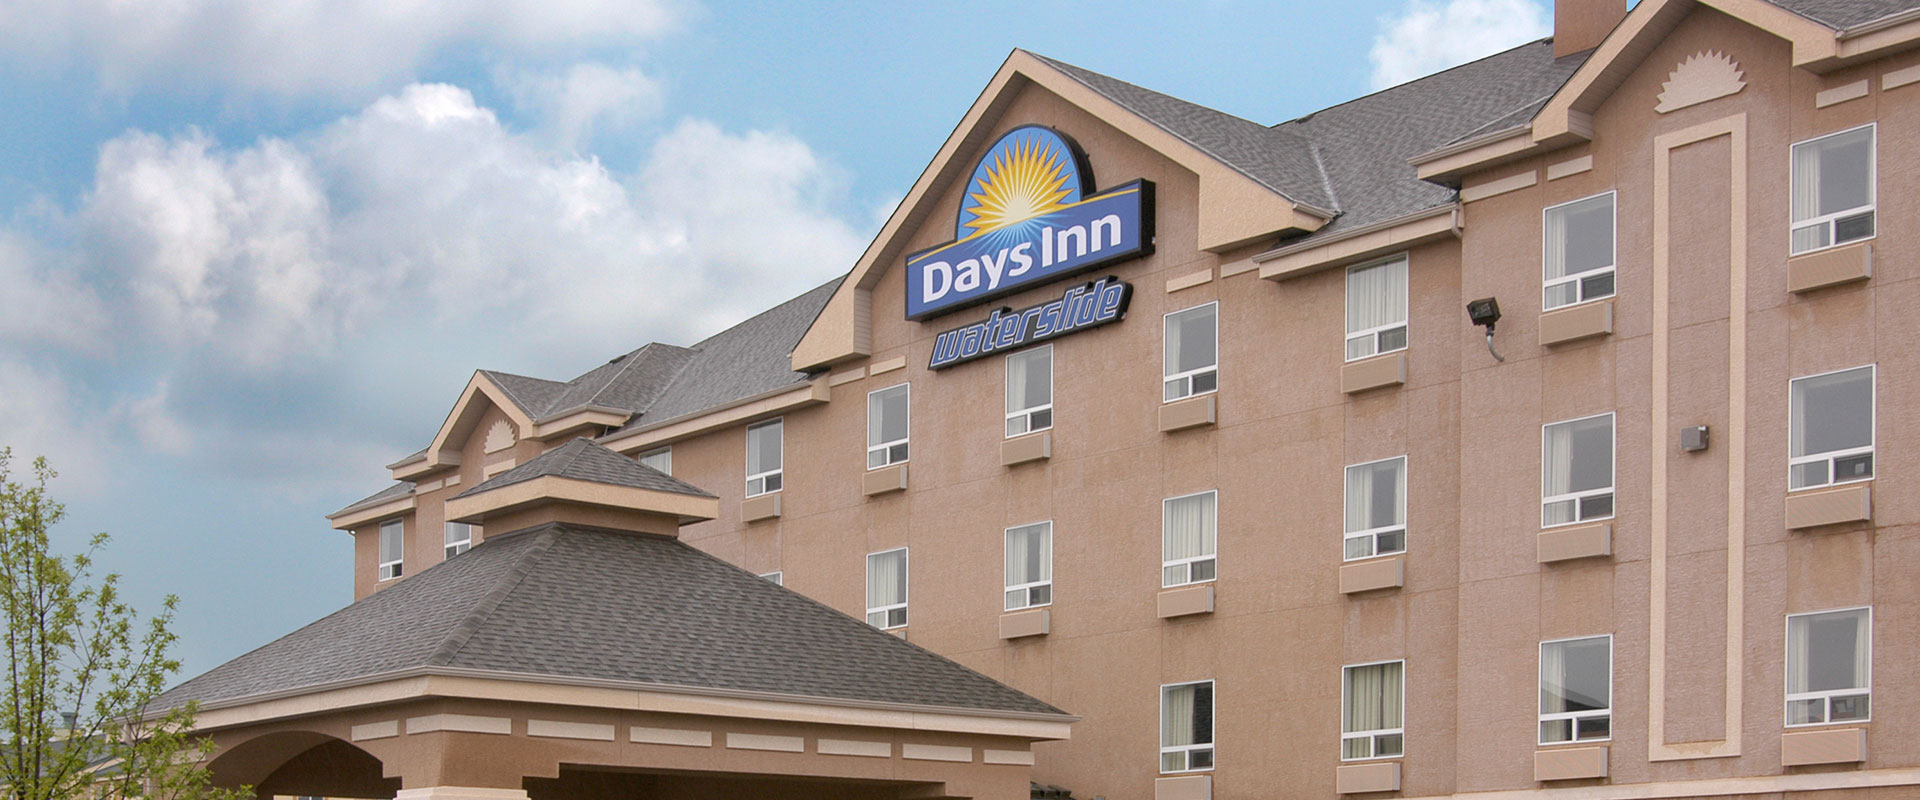 Large sized view of the exterior building of Days Inn Red Deer, Alberta with the company logo signage and a smaller sign that reads waterslide.